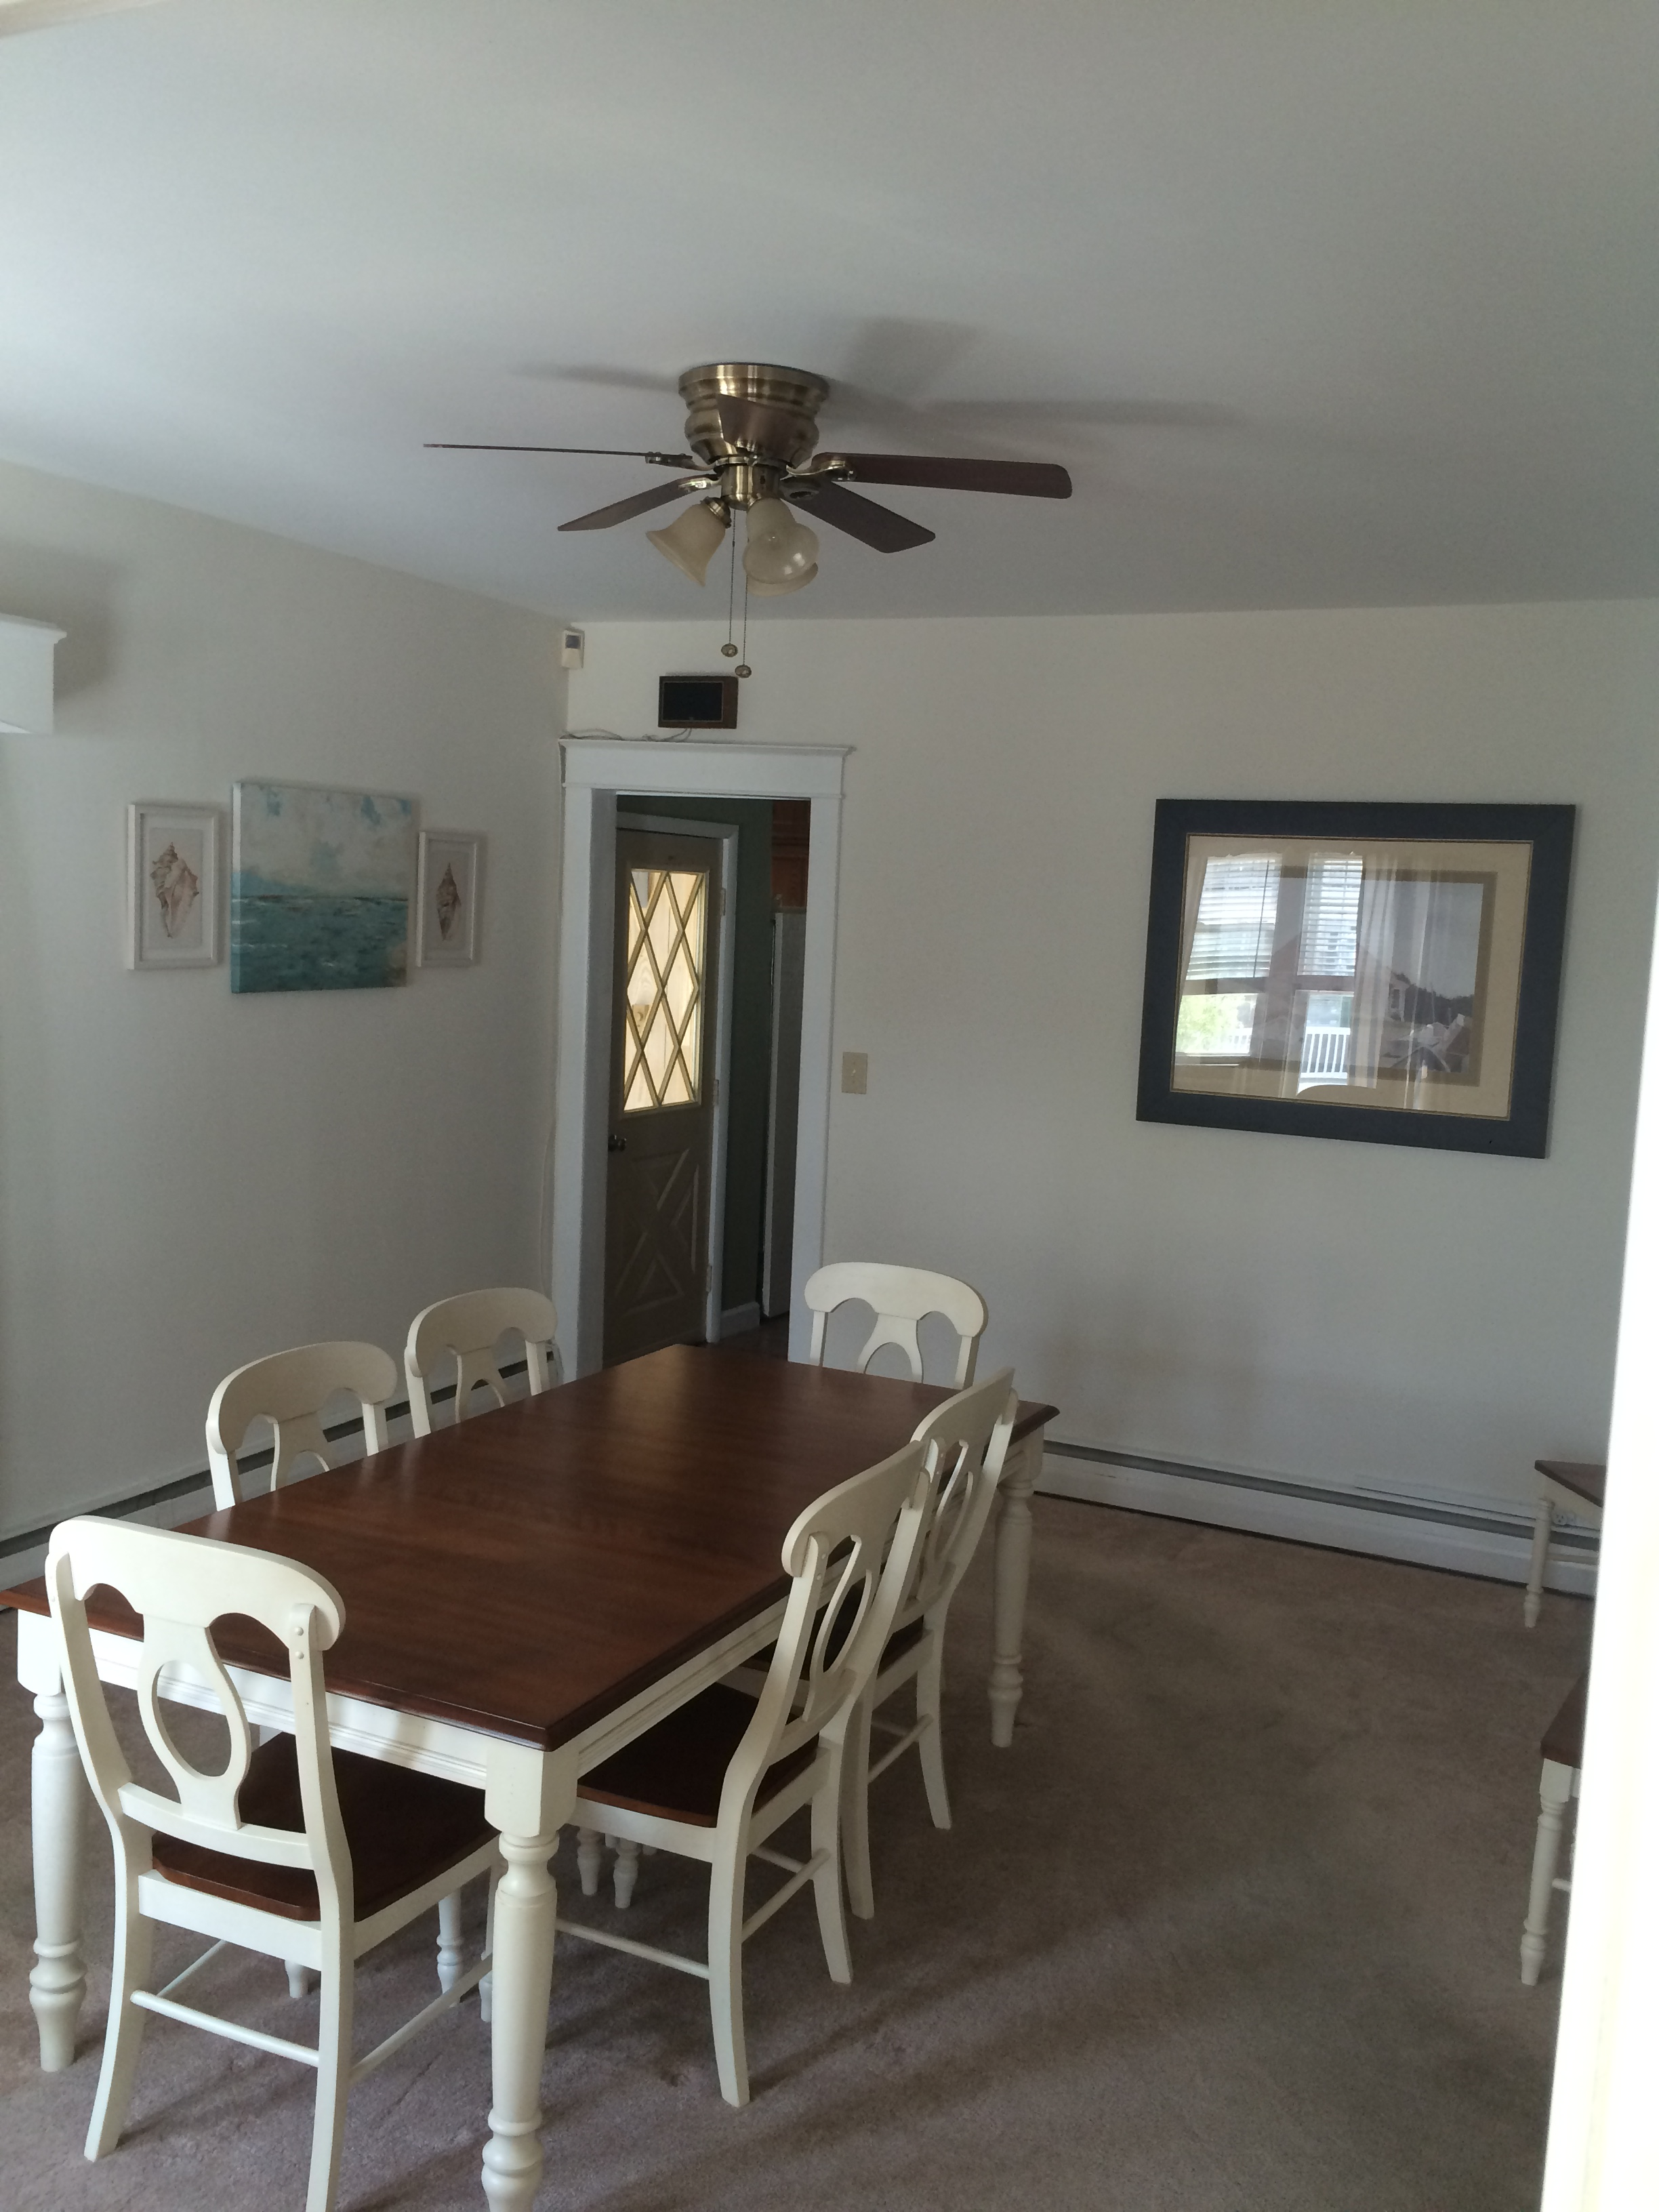 dining room with table for 6 and ceiling fan